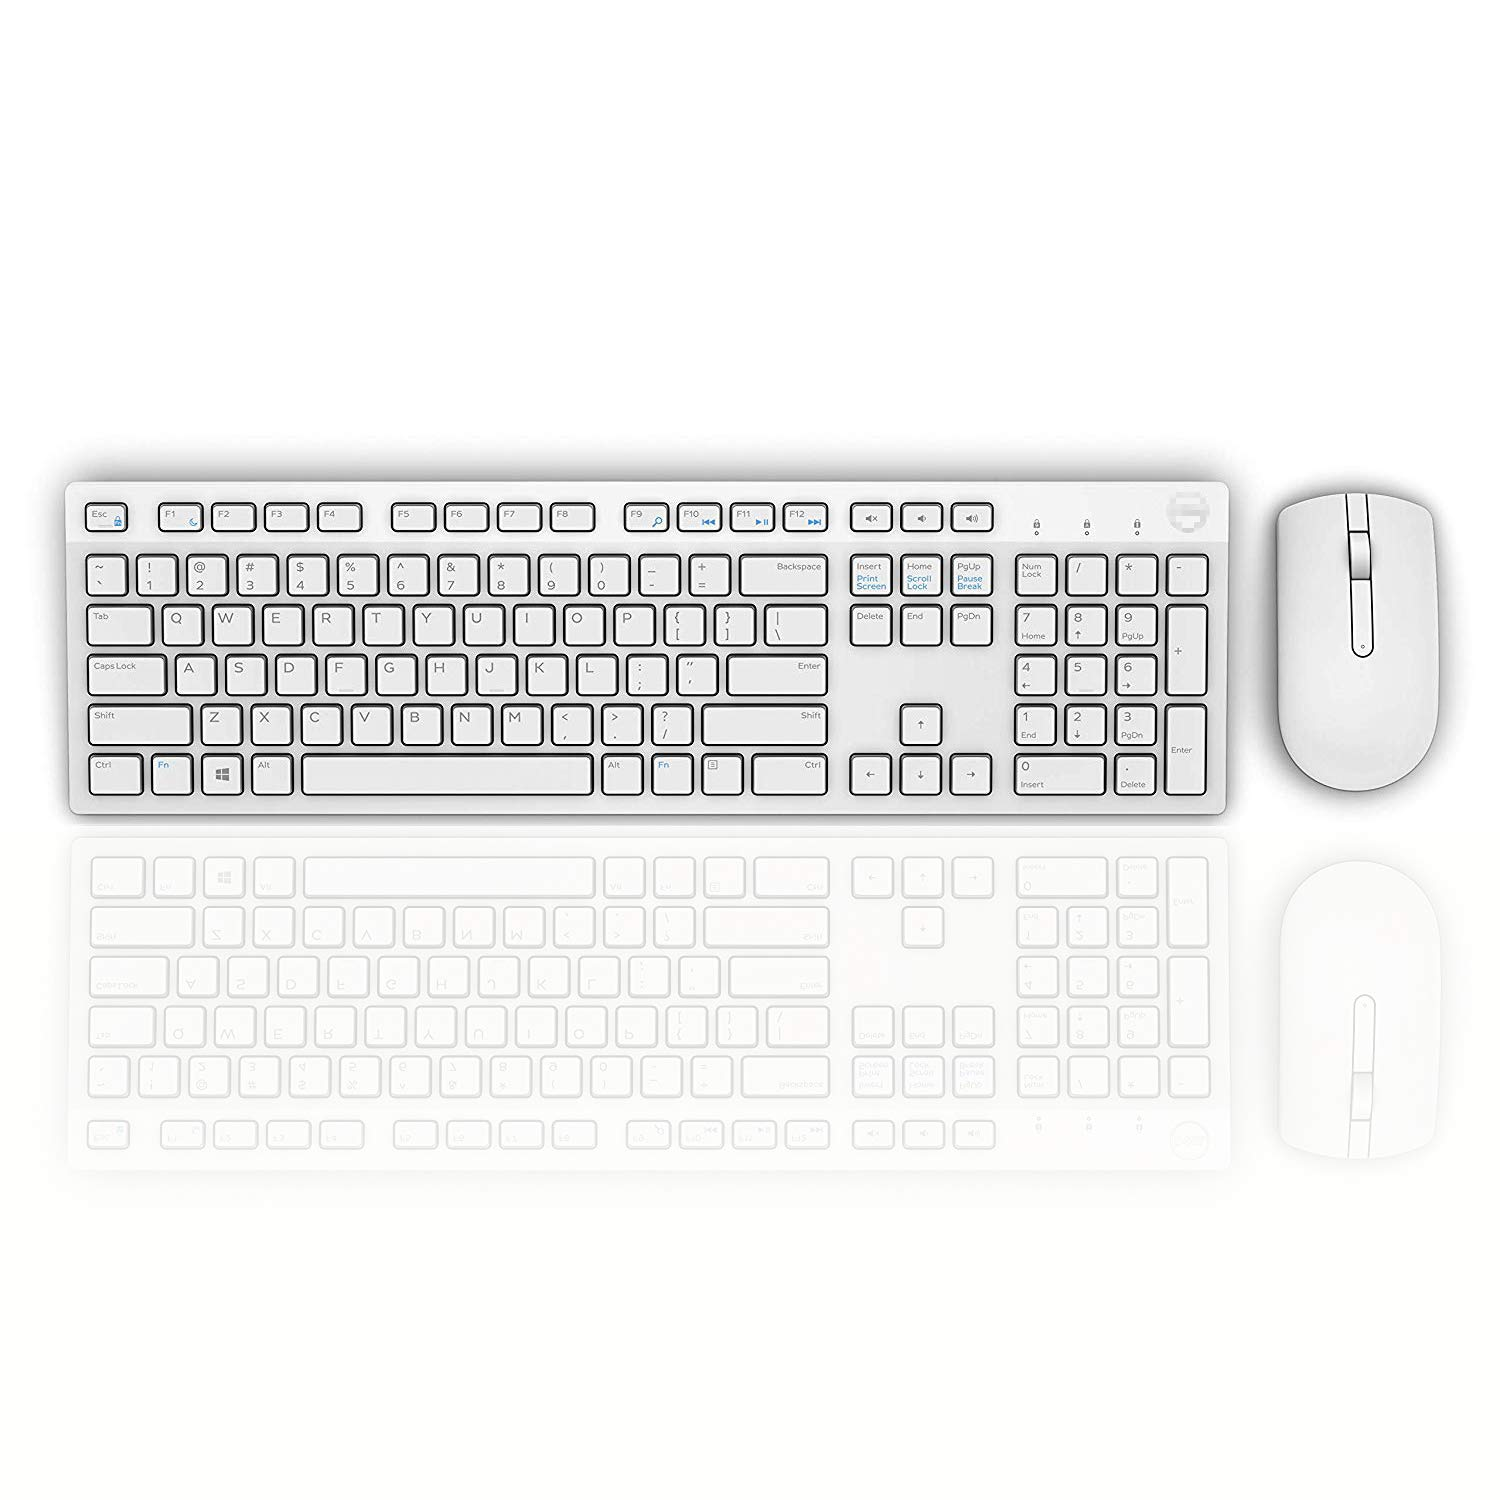 5WH32 Dell KM636 Wireless Keyboard /& Mouse Combo